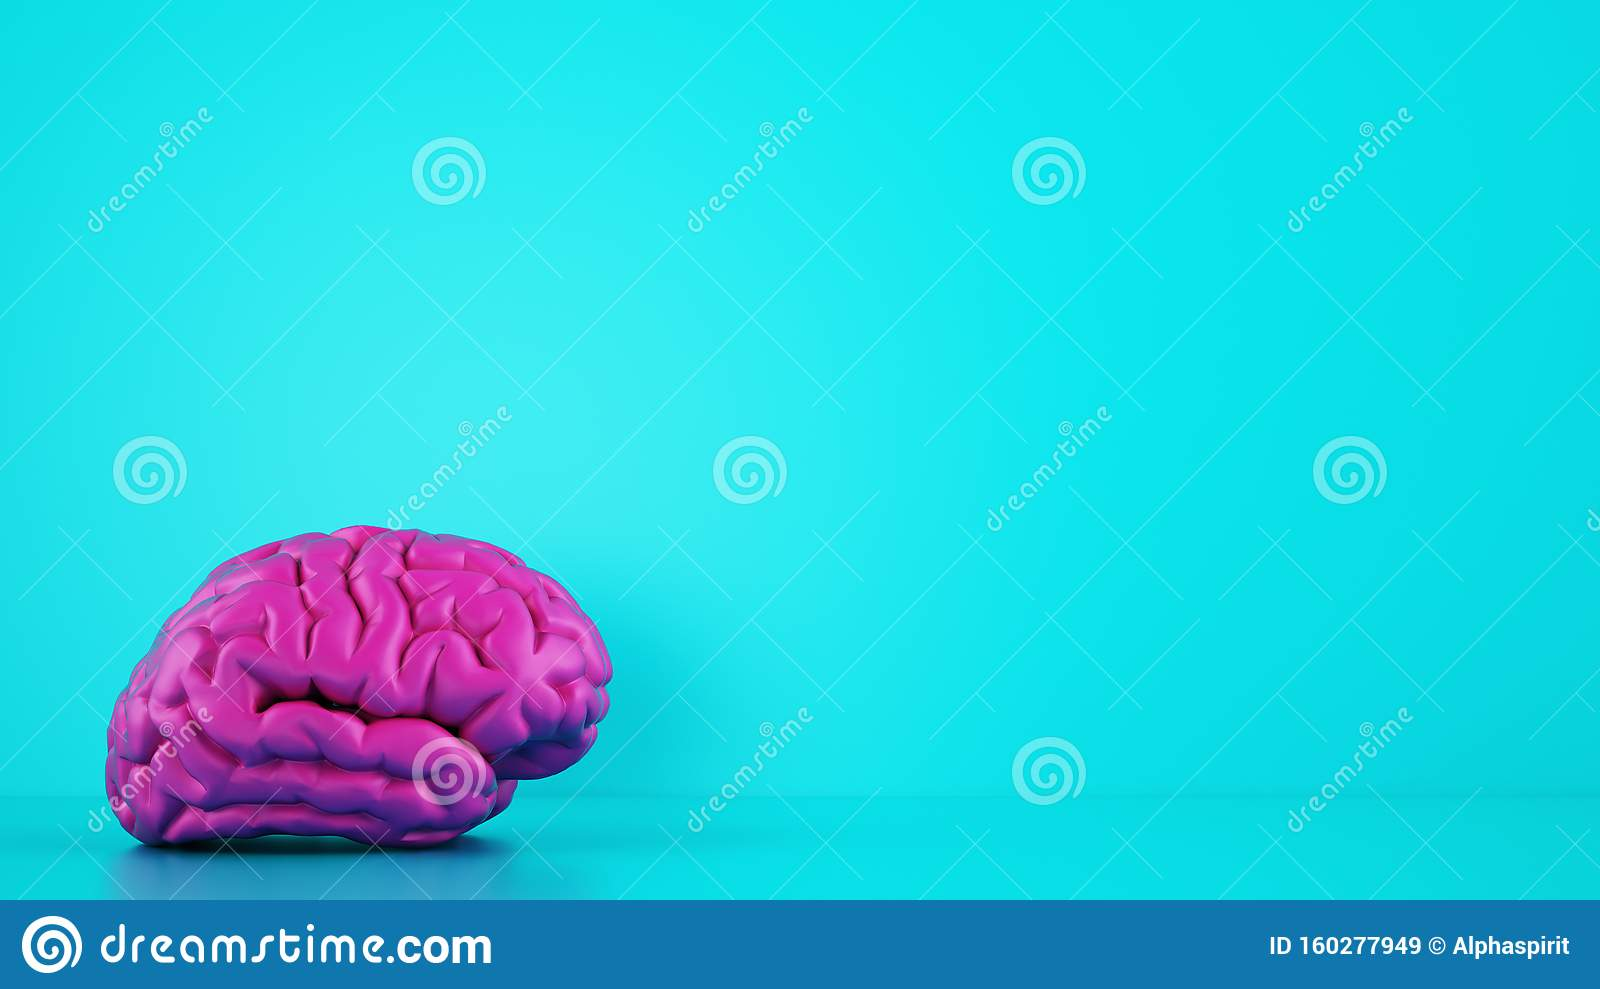 Magenta color brain on cyan background. Medical concept. 3D Rendering